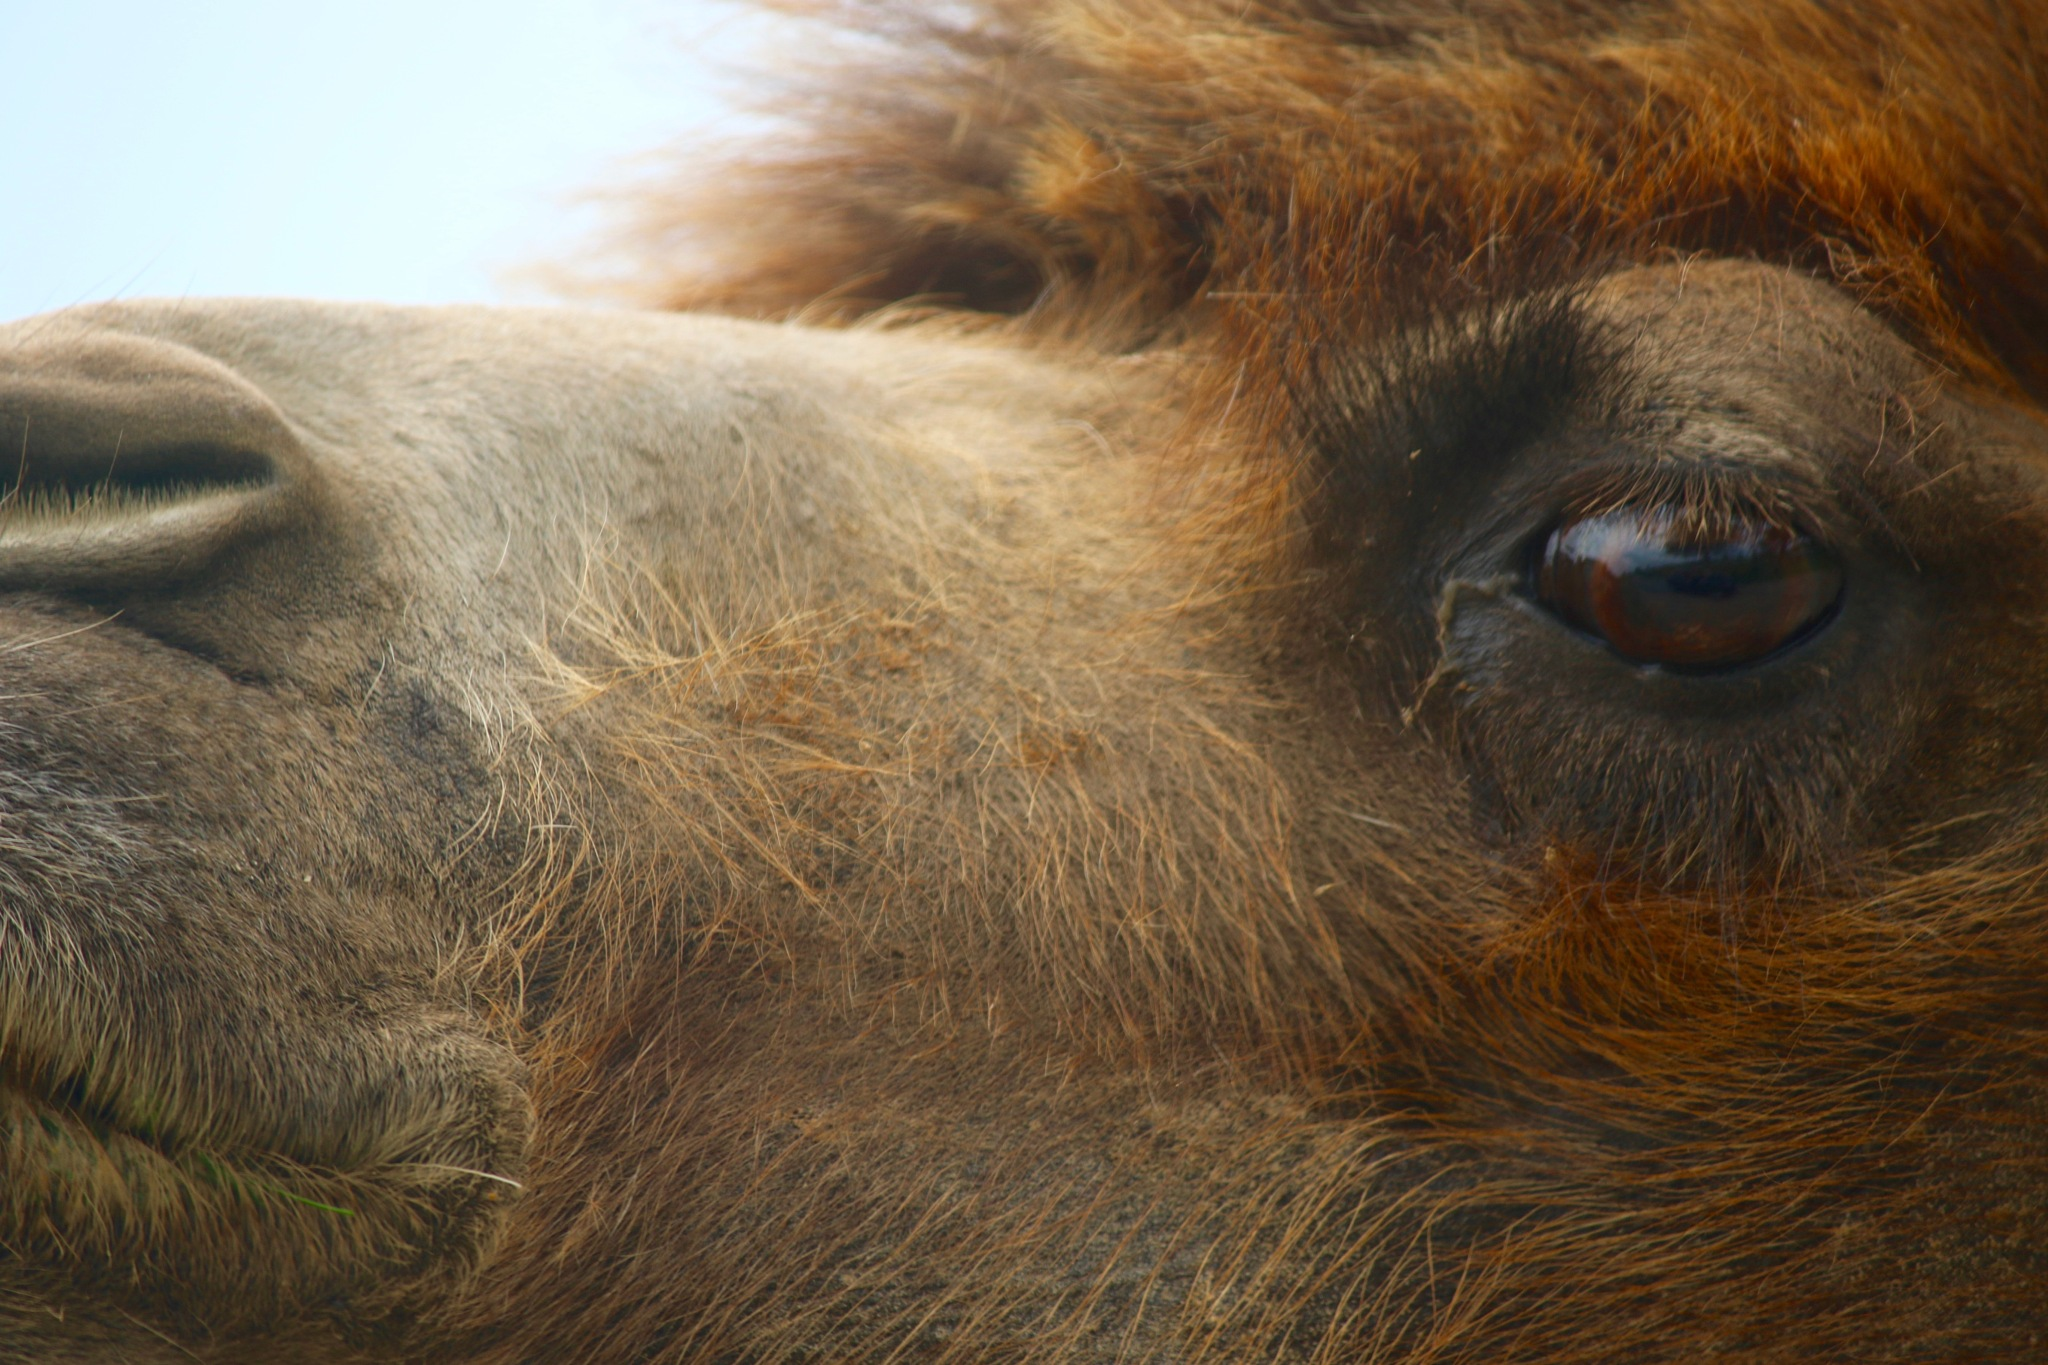 The Eye Of A Camel by PaulWhiteman